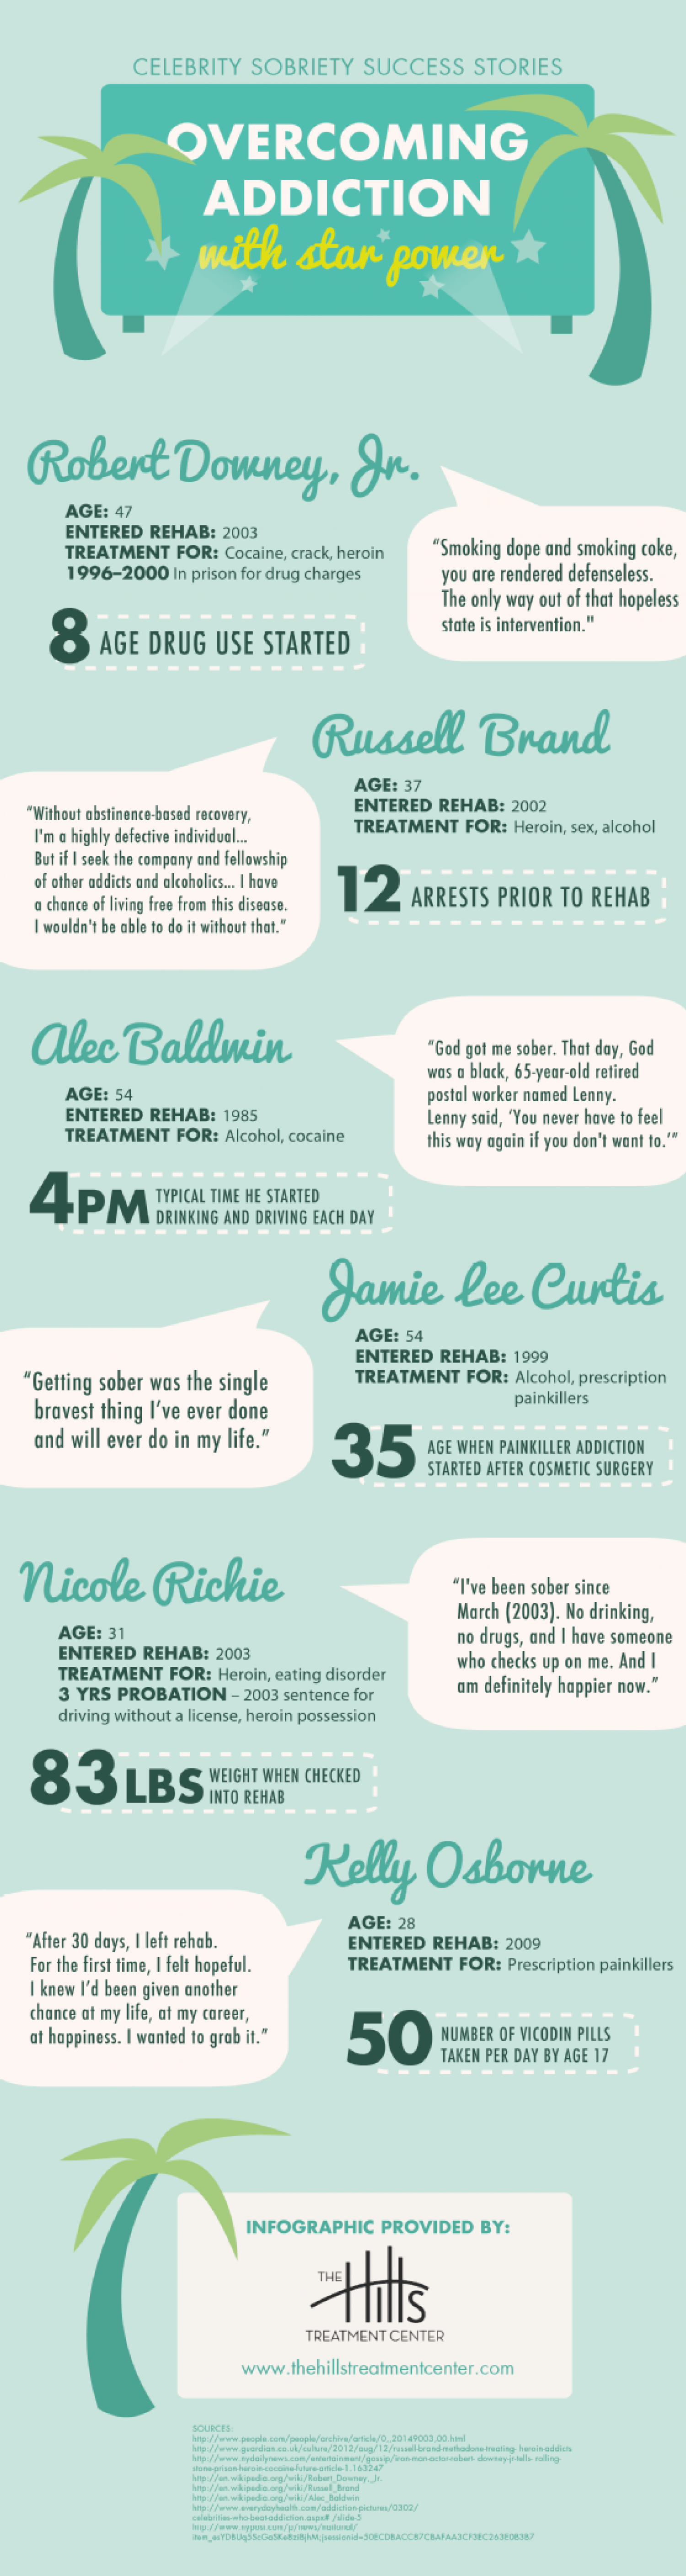 Overcoming Addiction with Star Power: Celebrity Sobriety Success Stories Infographic